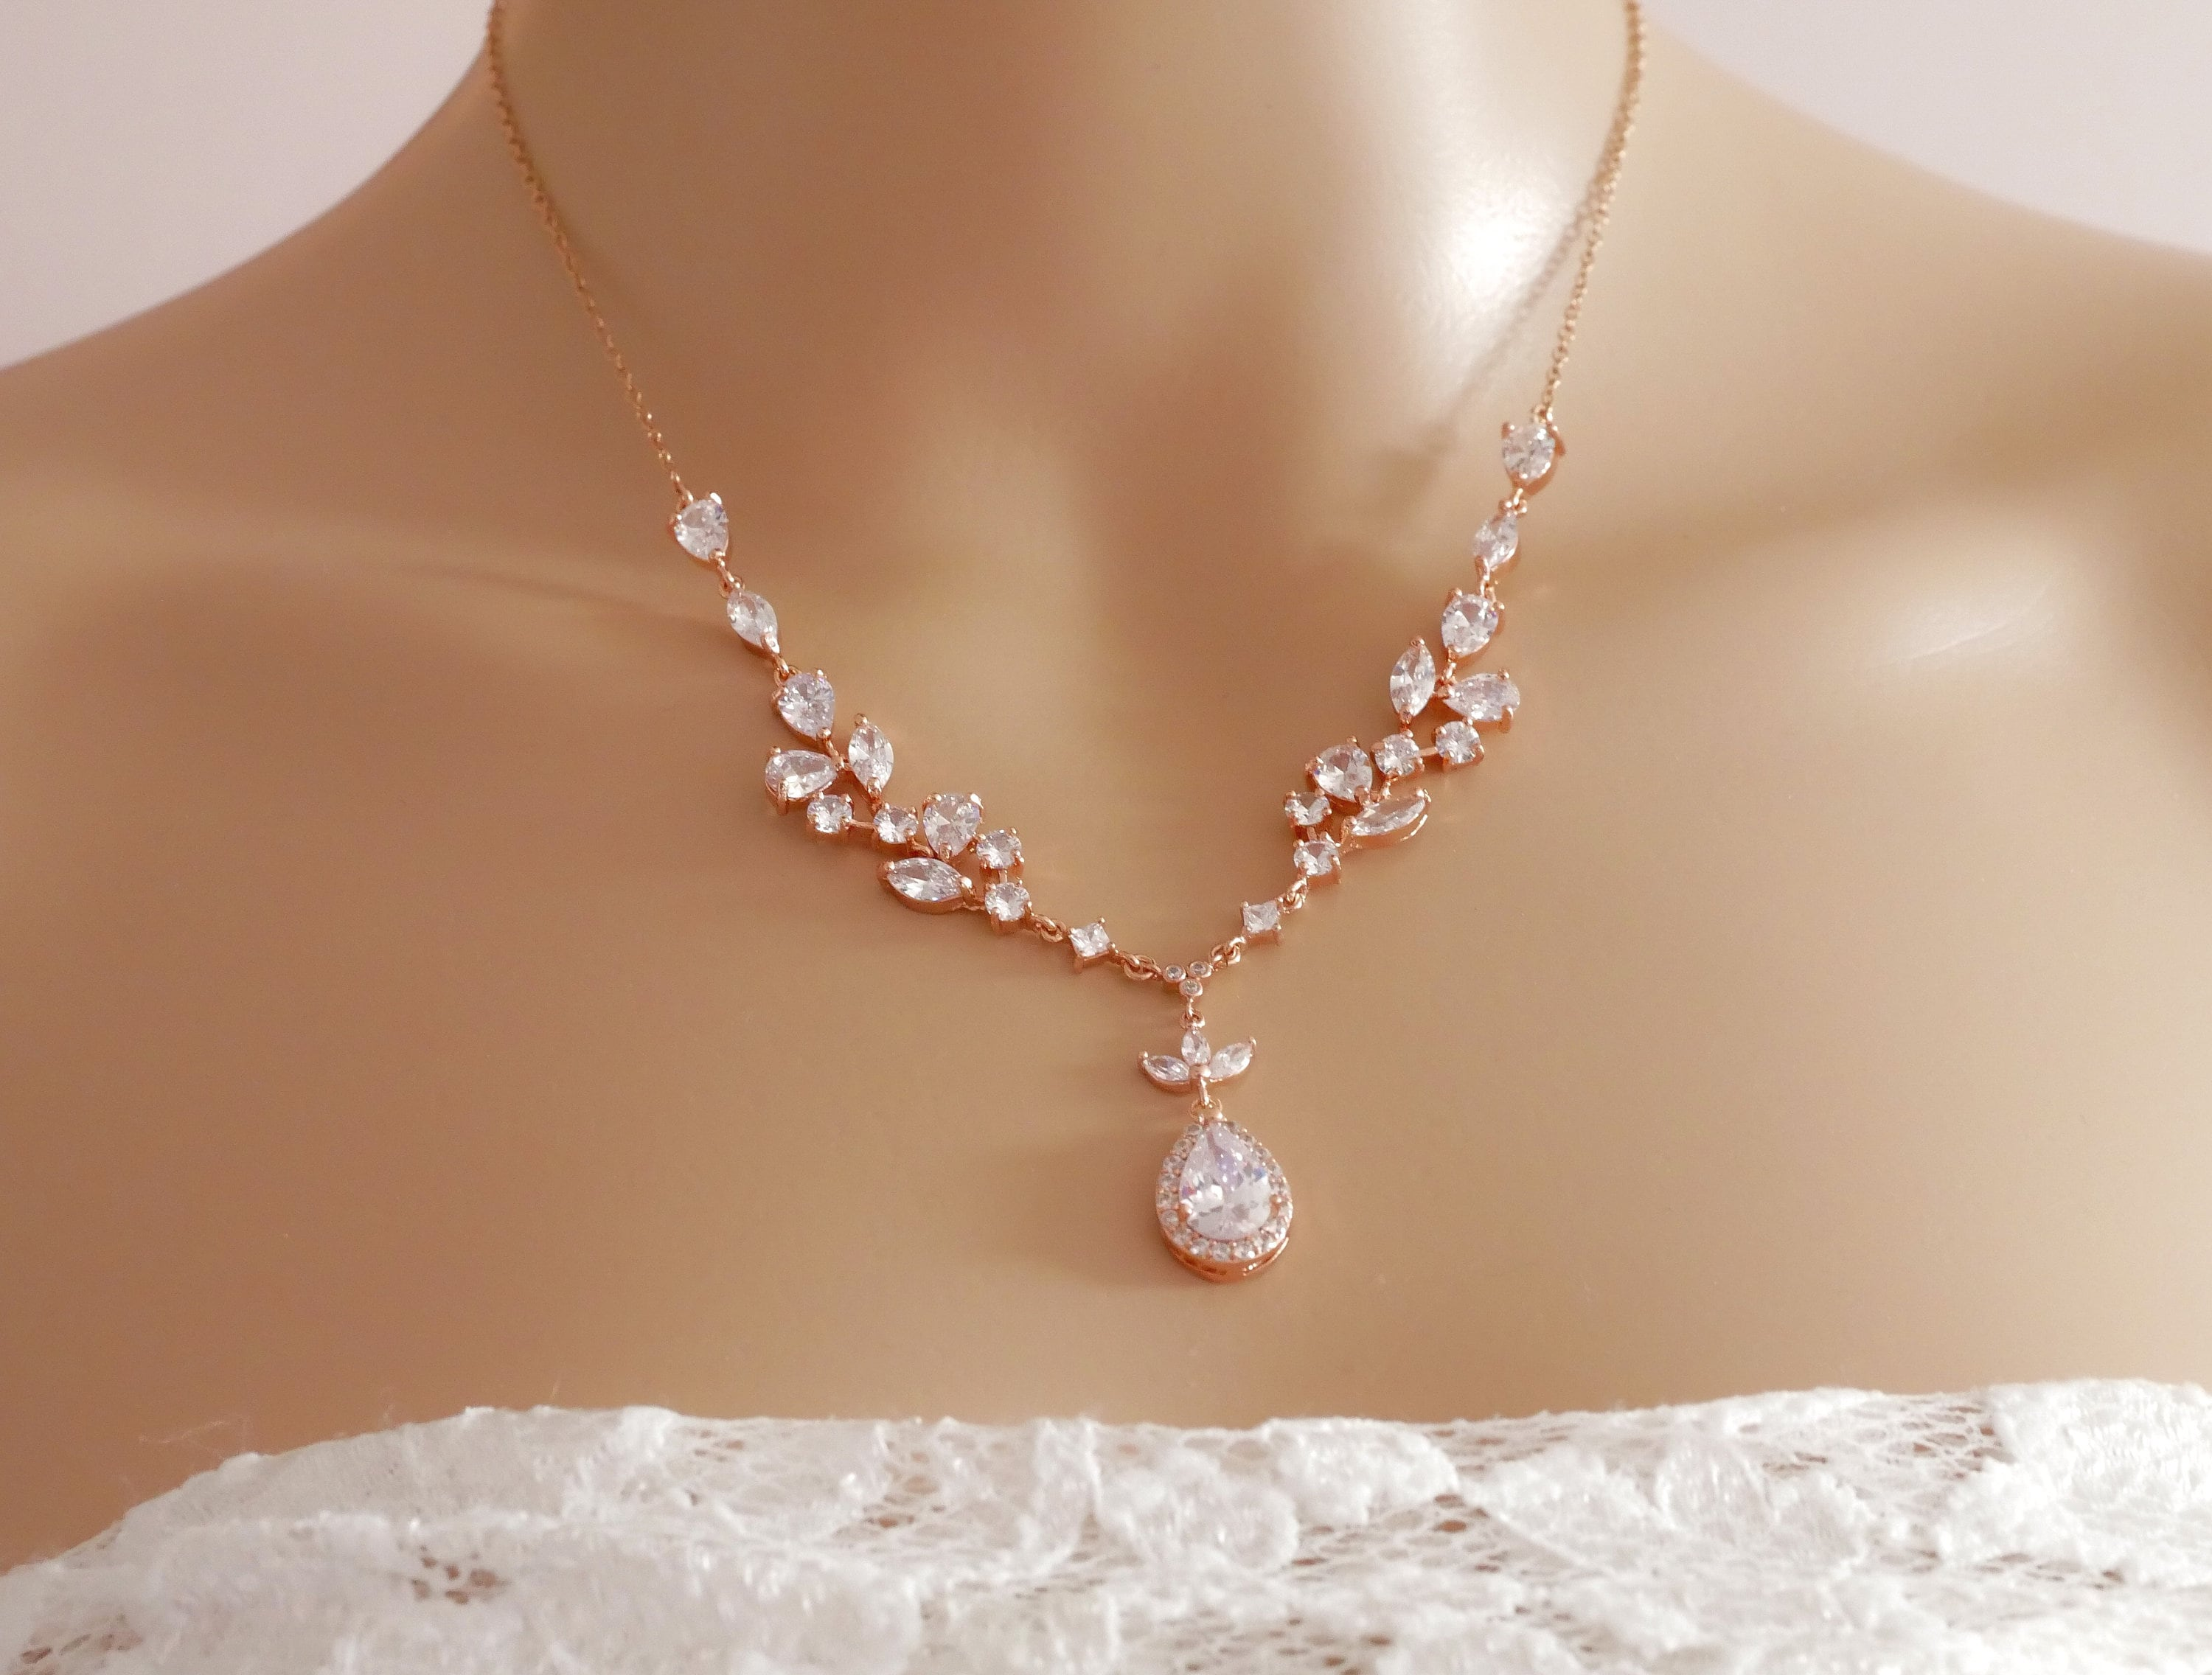 Bridal crystal necklace Rose gold or silver sterling silver cubic